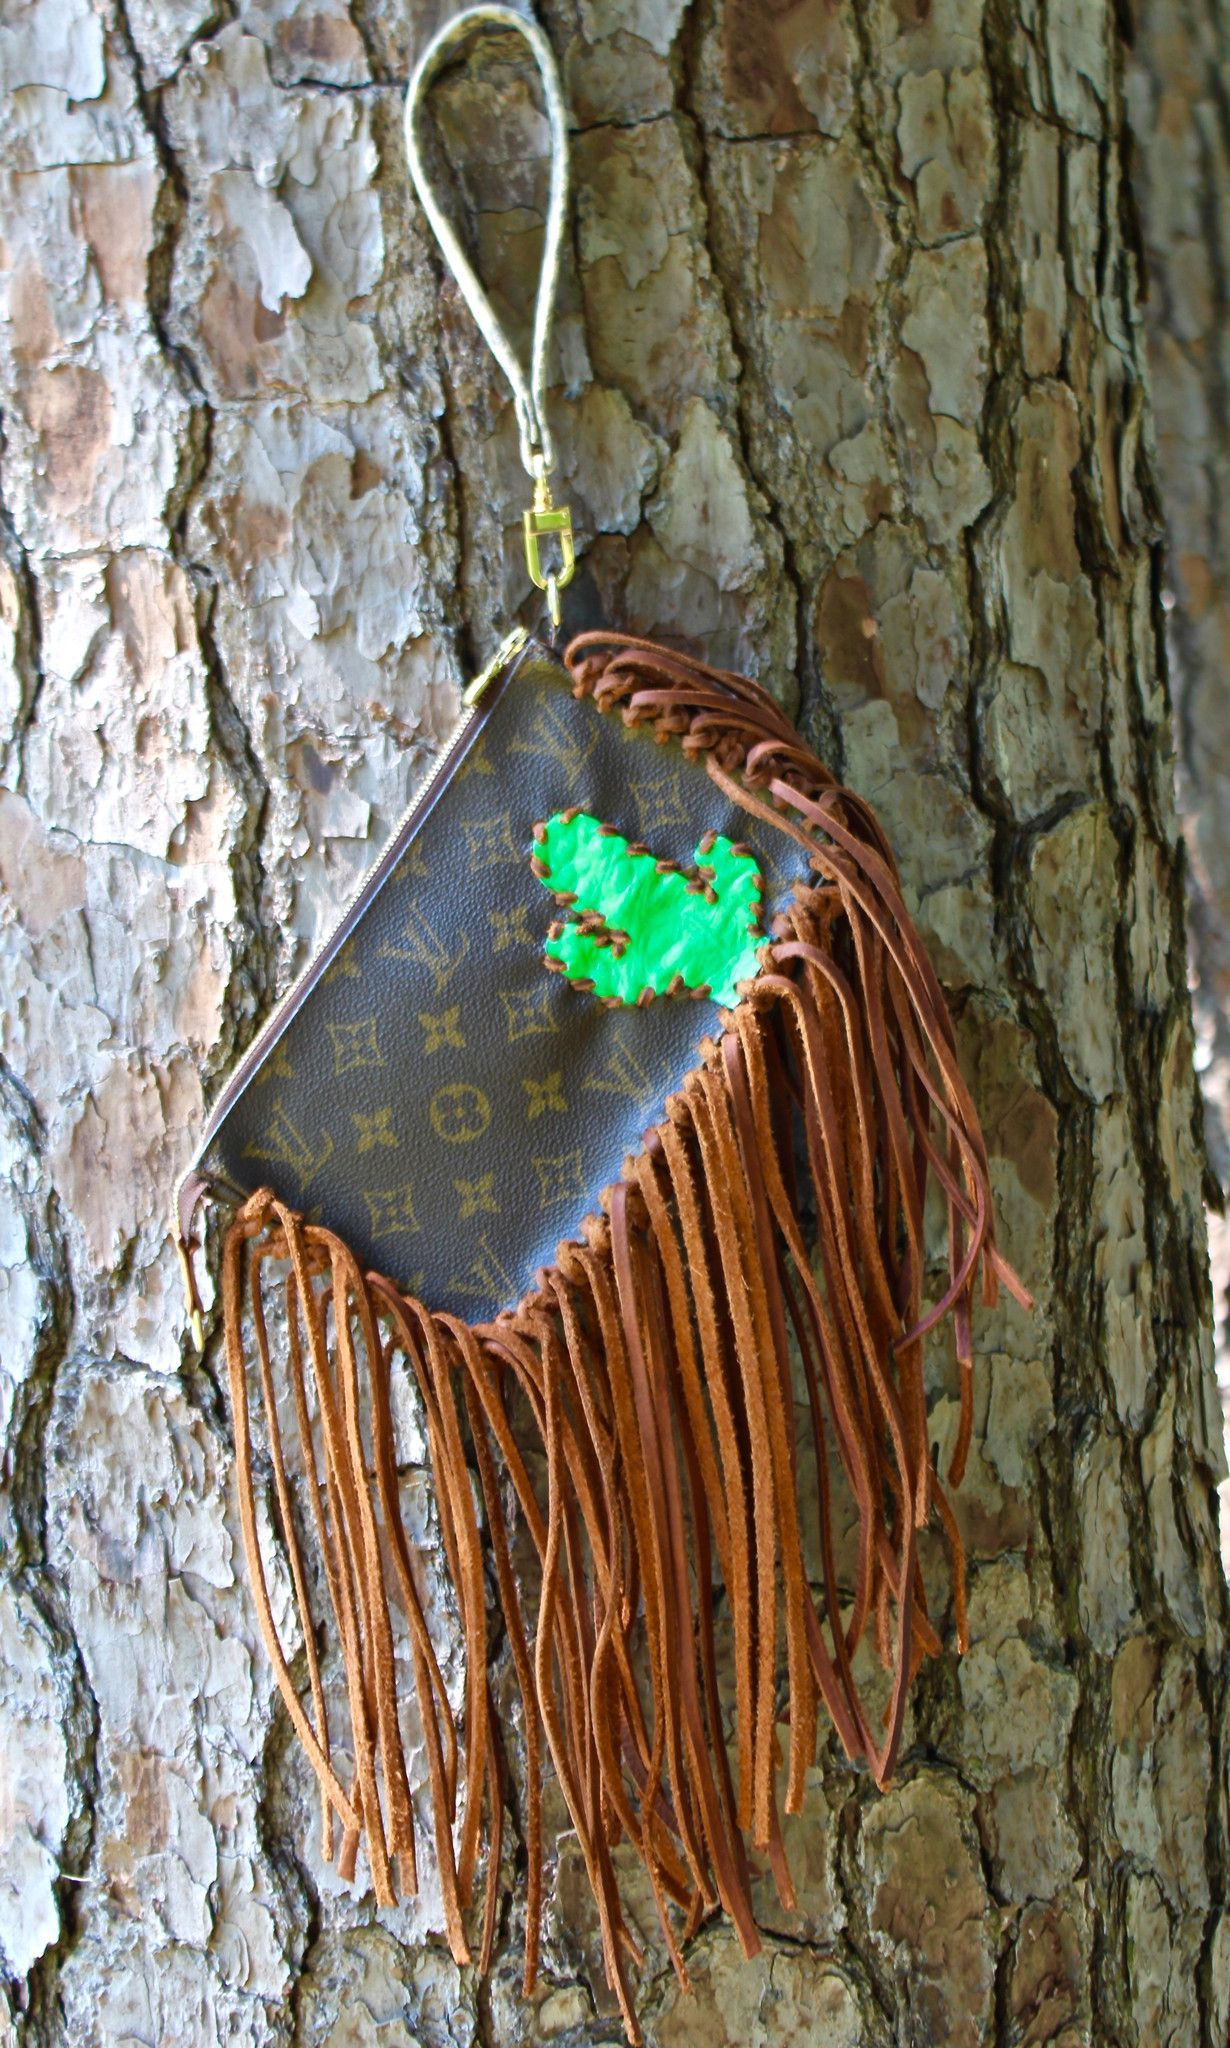 """Authentic Fringe Louis Vuitton Cactus Wristlet by Rockin MD! Ready to ship! - letter of authenticity will be provided! Dimensions - 9.1"""" x 5.1"""" x 1.6"""" Please email info@toosassyboutique.com for additi"""